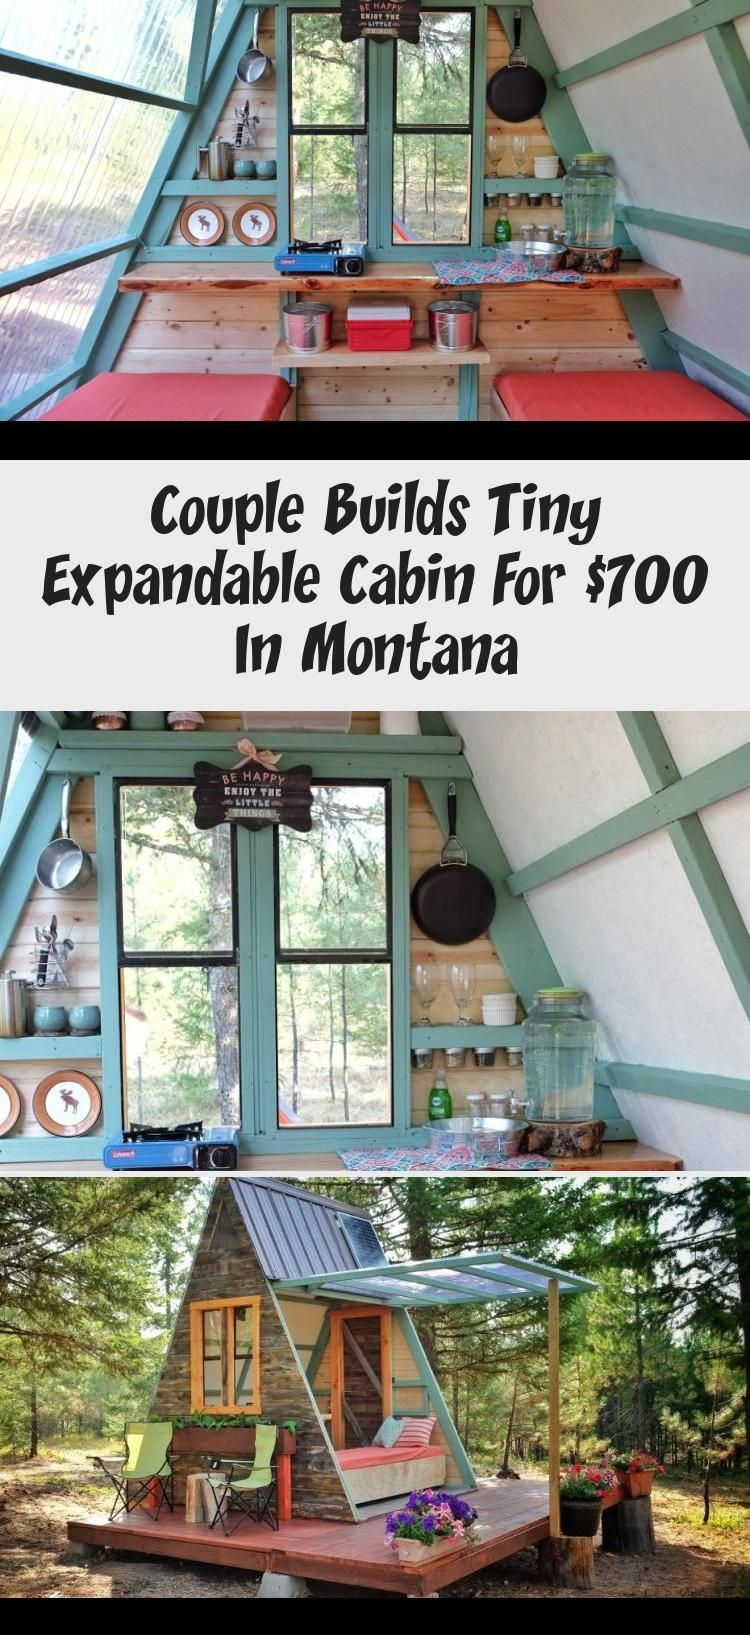 Couple Builds Tiny Expandable Cabin For $700 In Montana Minnesotean couple builds tiny expandable cabin for $700